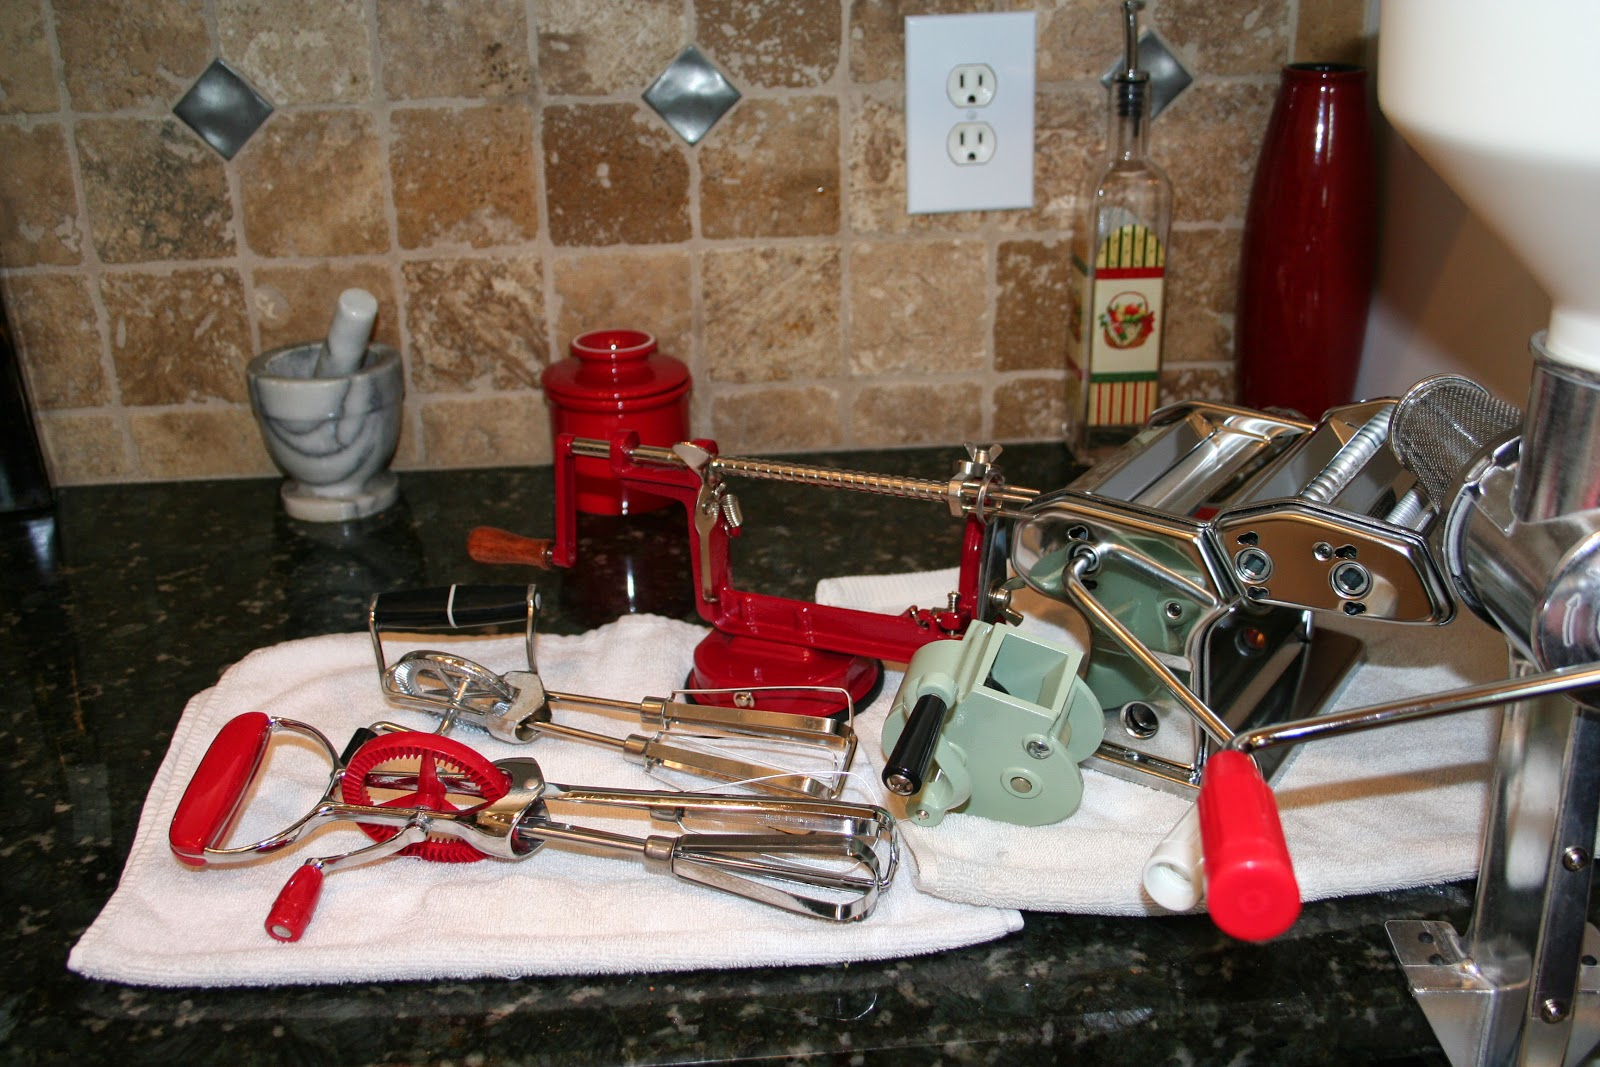 Uncategorized Non Electric Kitchen Appliances whispers from elizabeth cooking without electricity non electric i no longer have a standard mixer instead now reach for the two hand crank beaters shown on left need to make spaghetti